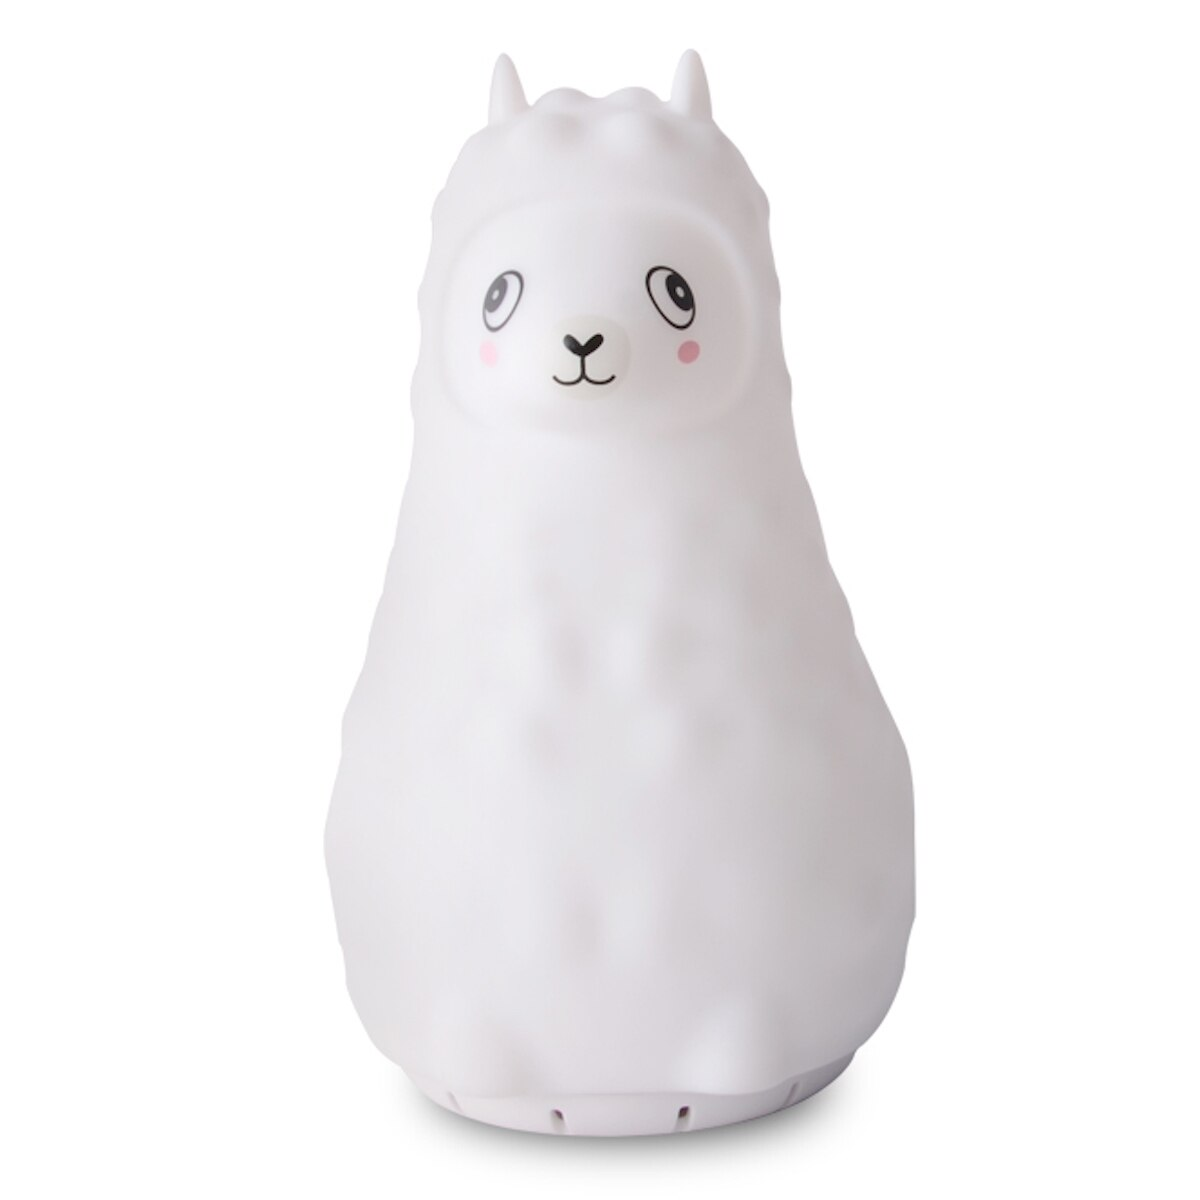 Duski Rechargeable Bluetooth Night Light Llama